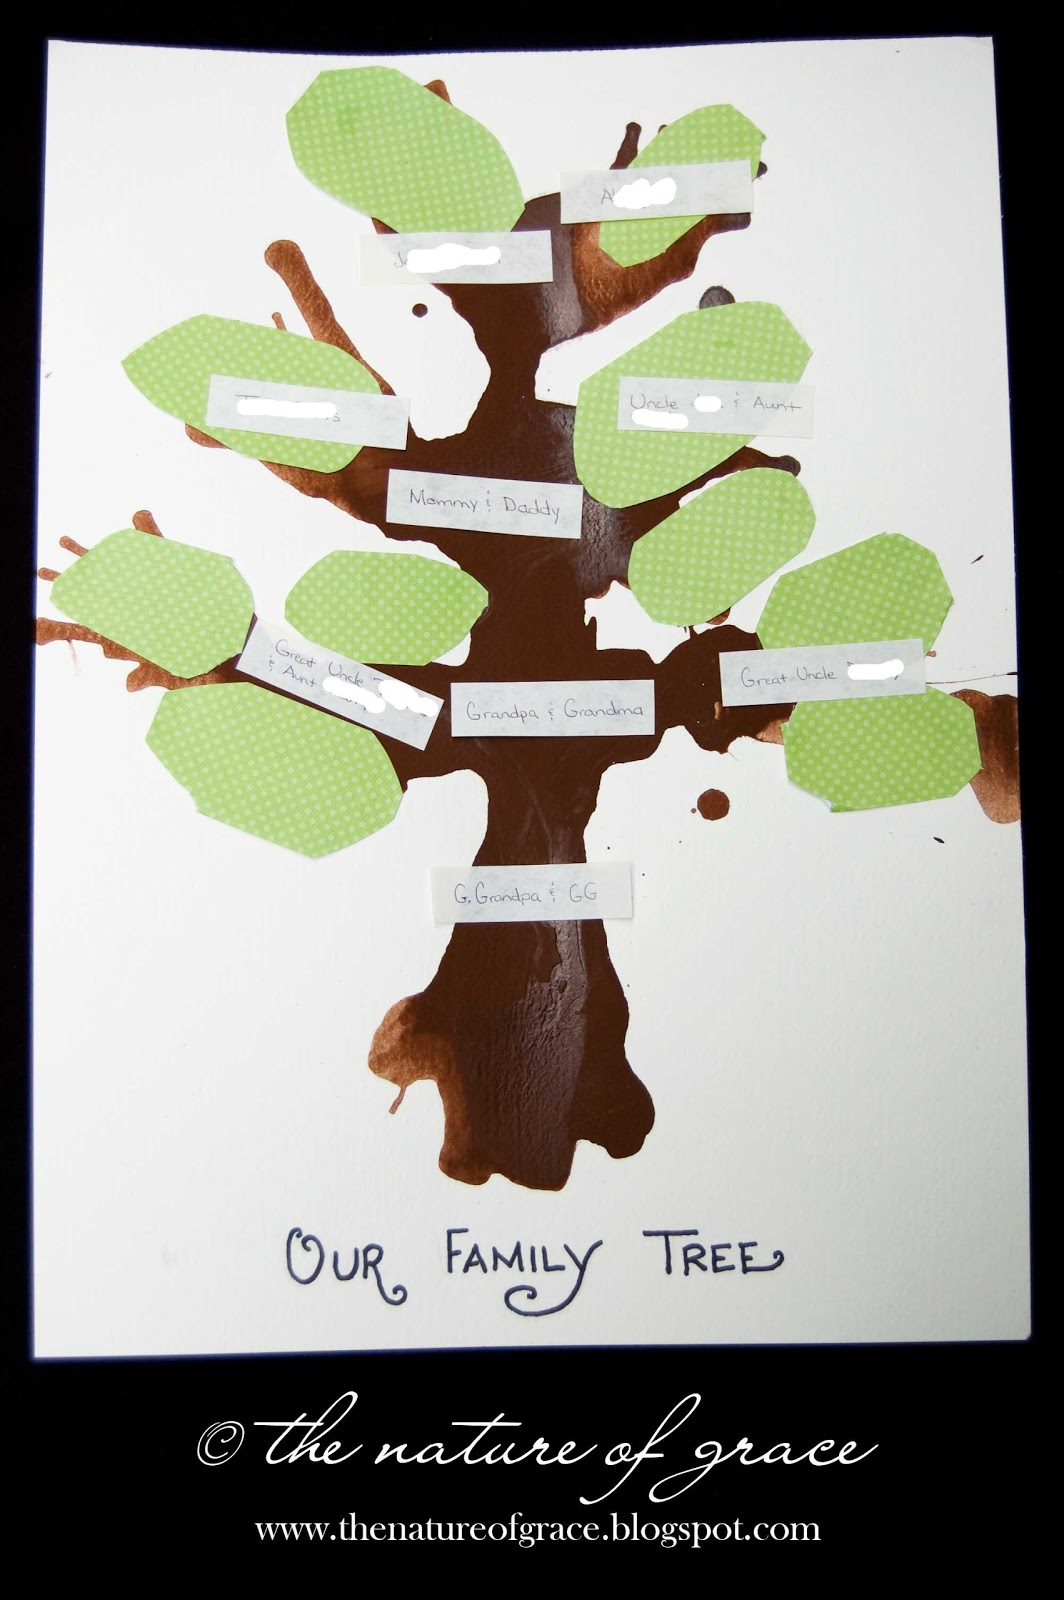 This is a graphic of Dramatic Pictures of Family Trees